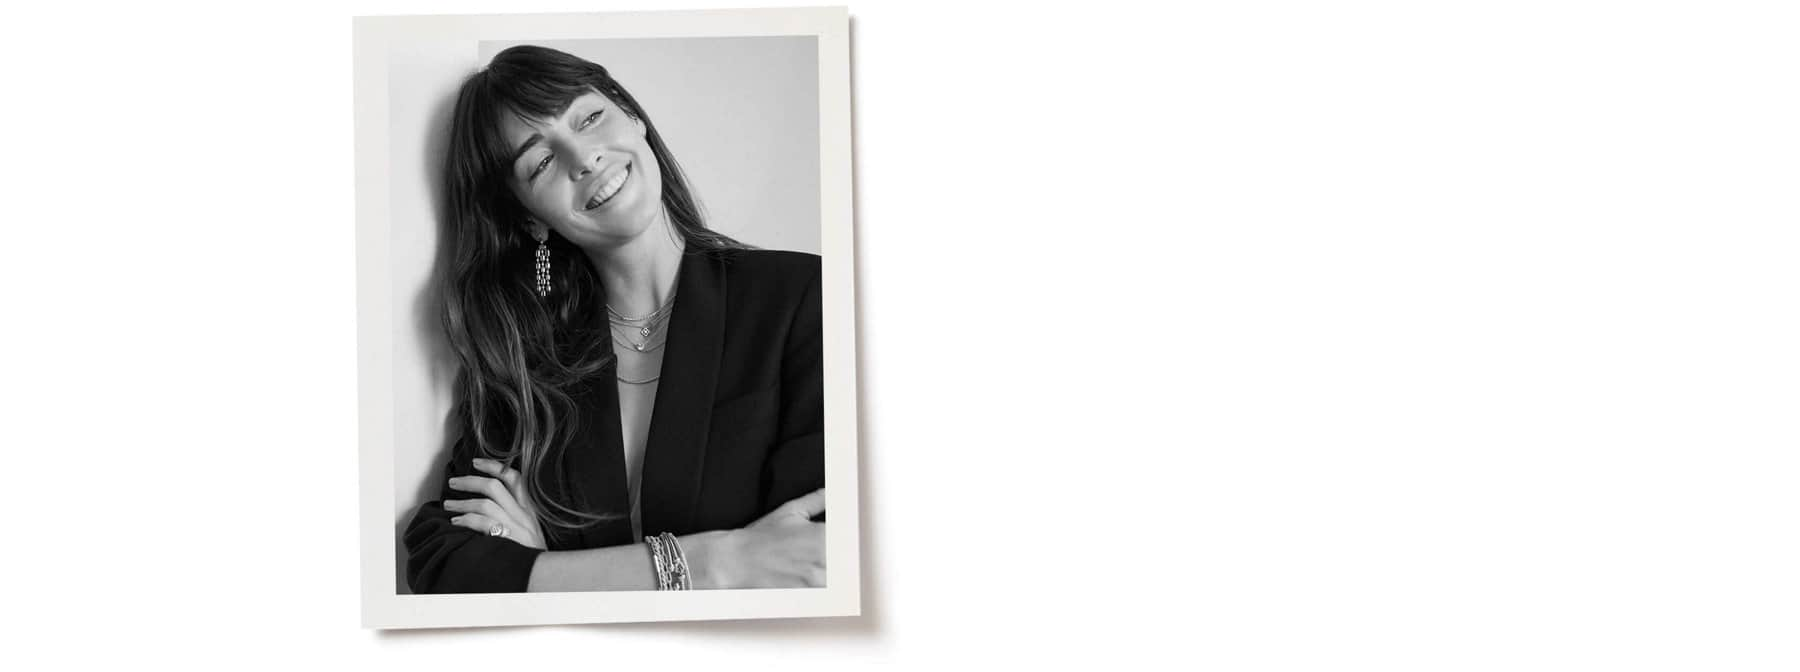 A black-and-white photo of Juliette is placed on top of a white background. The photo show Juliette smiling with her head tilted to the left while wearing David Yurman jewelry.